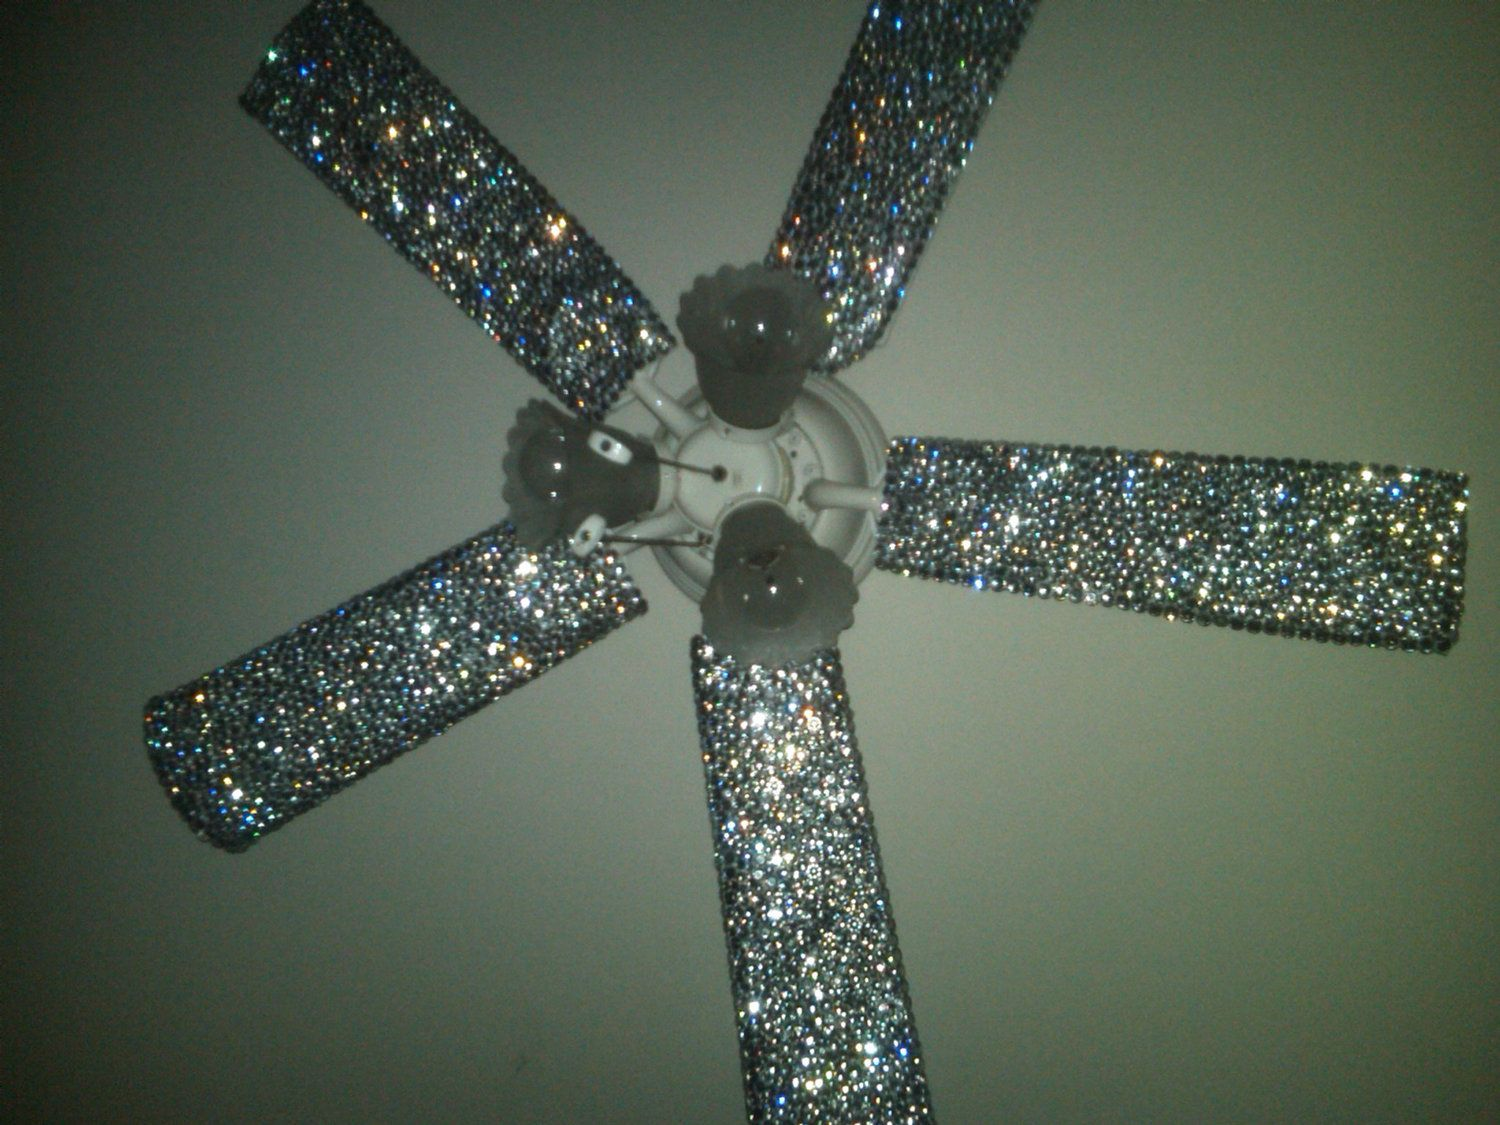 Ceiling Fan Covers By Lauragilroy6 On Etsy 60 00